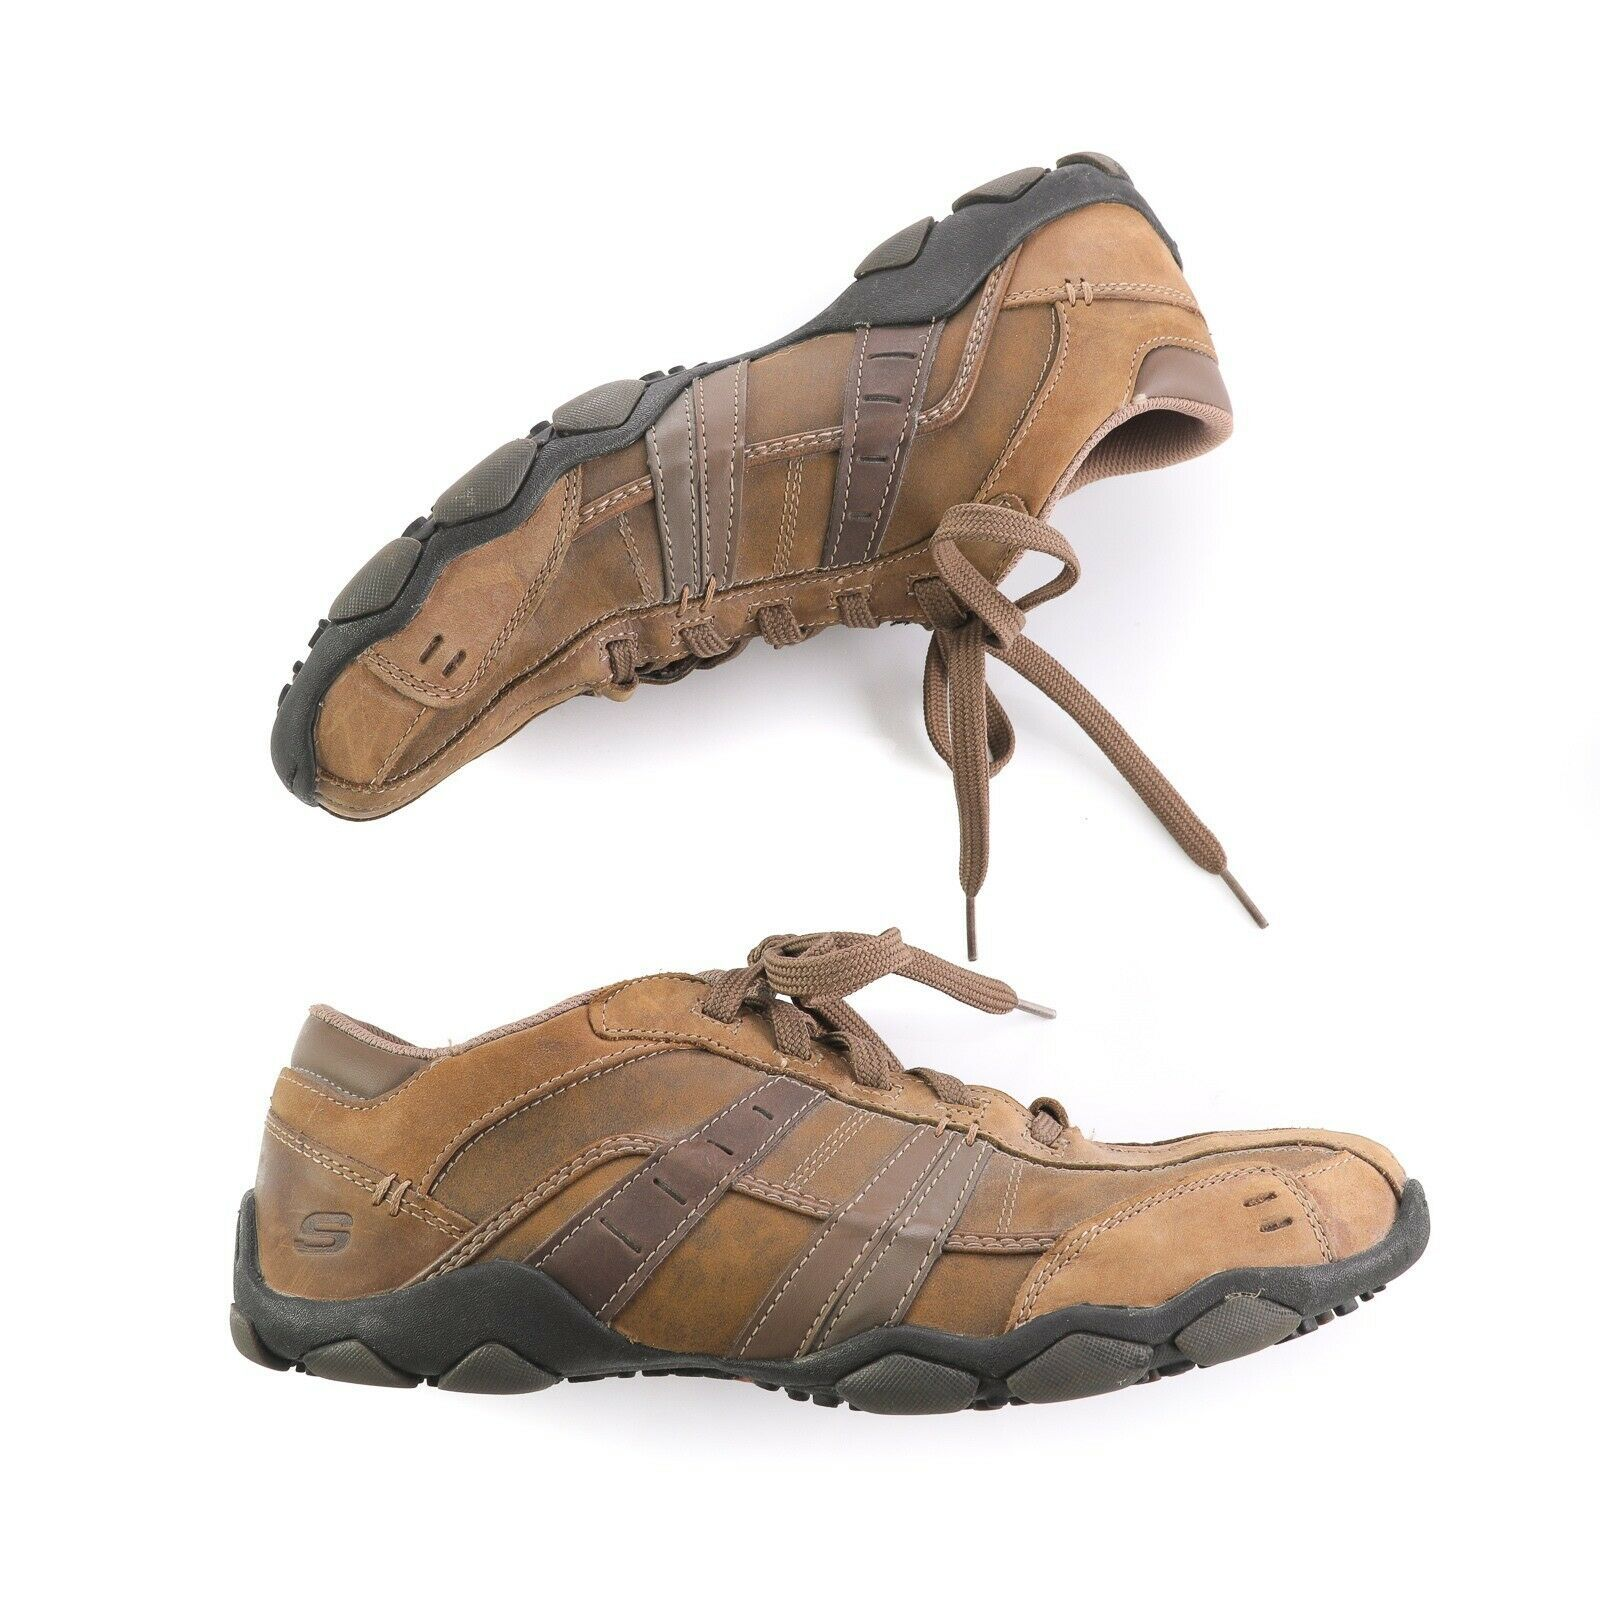 Skechers Brown Leather Bicycle Toe Fashion Sneakers Shoes Mens 10 SN 62607